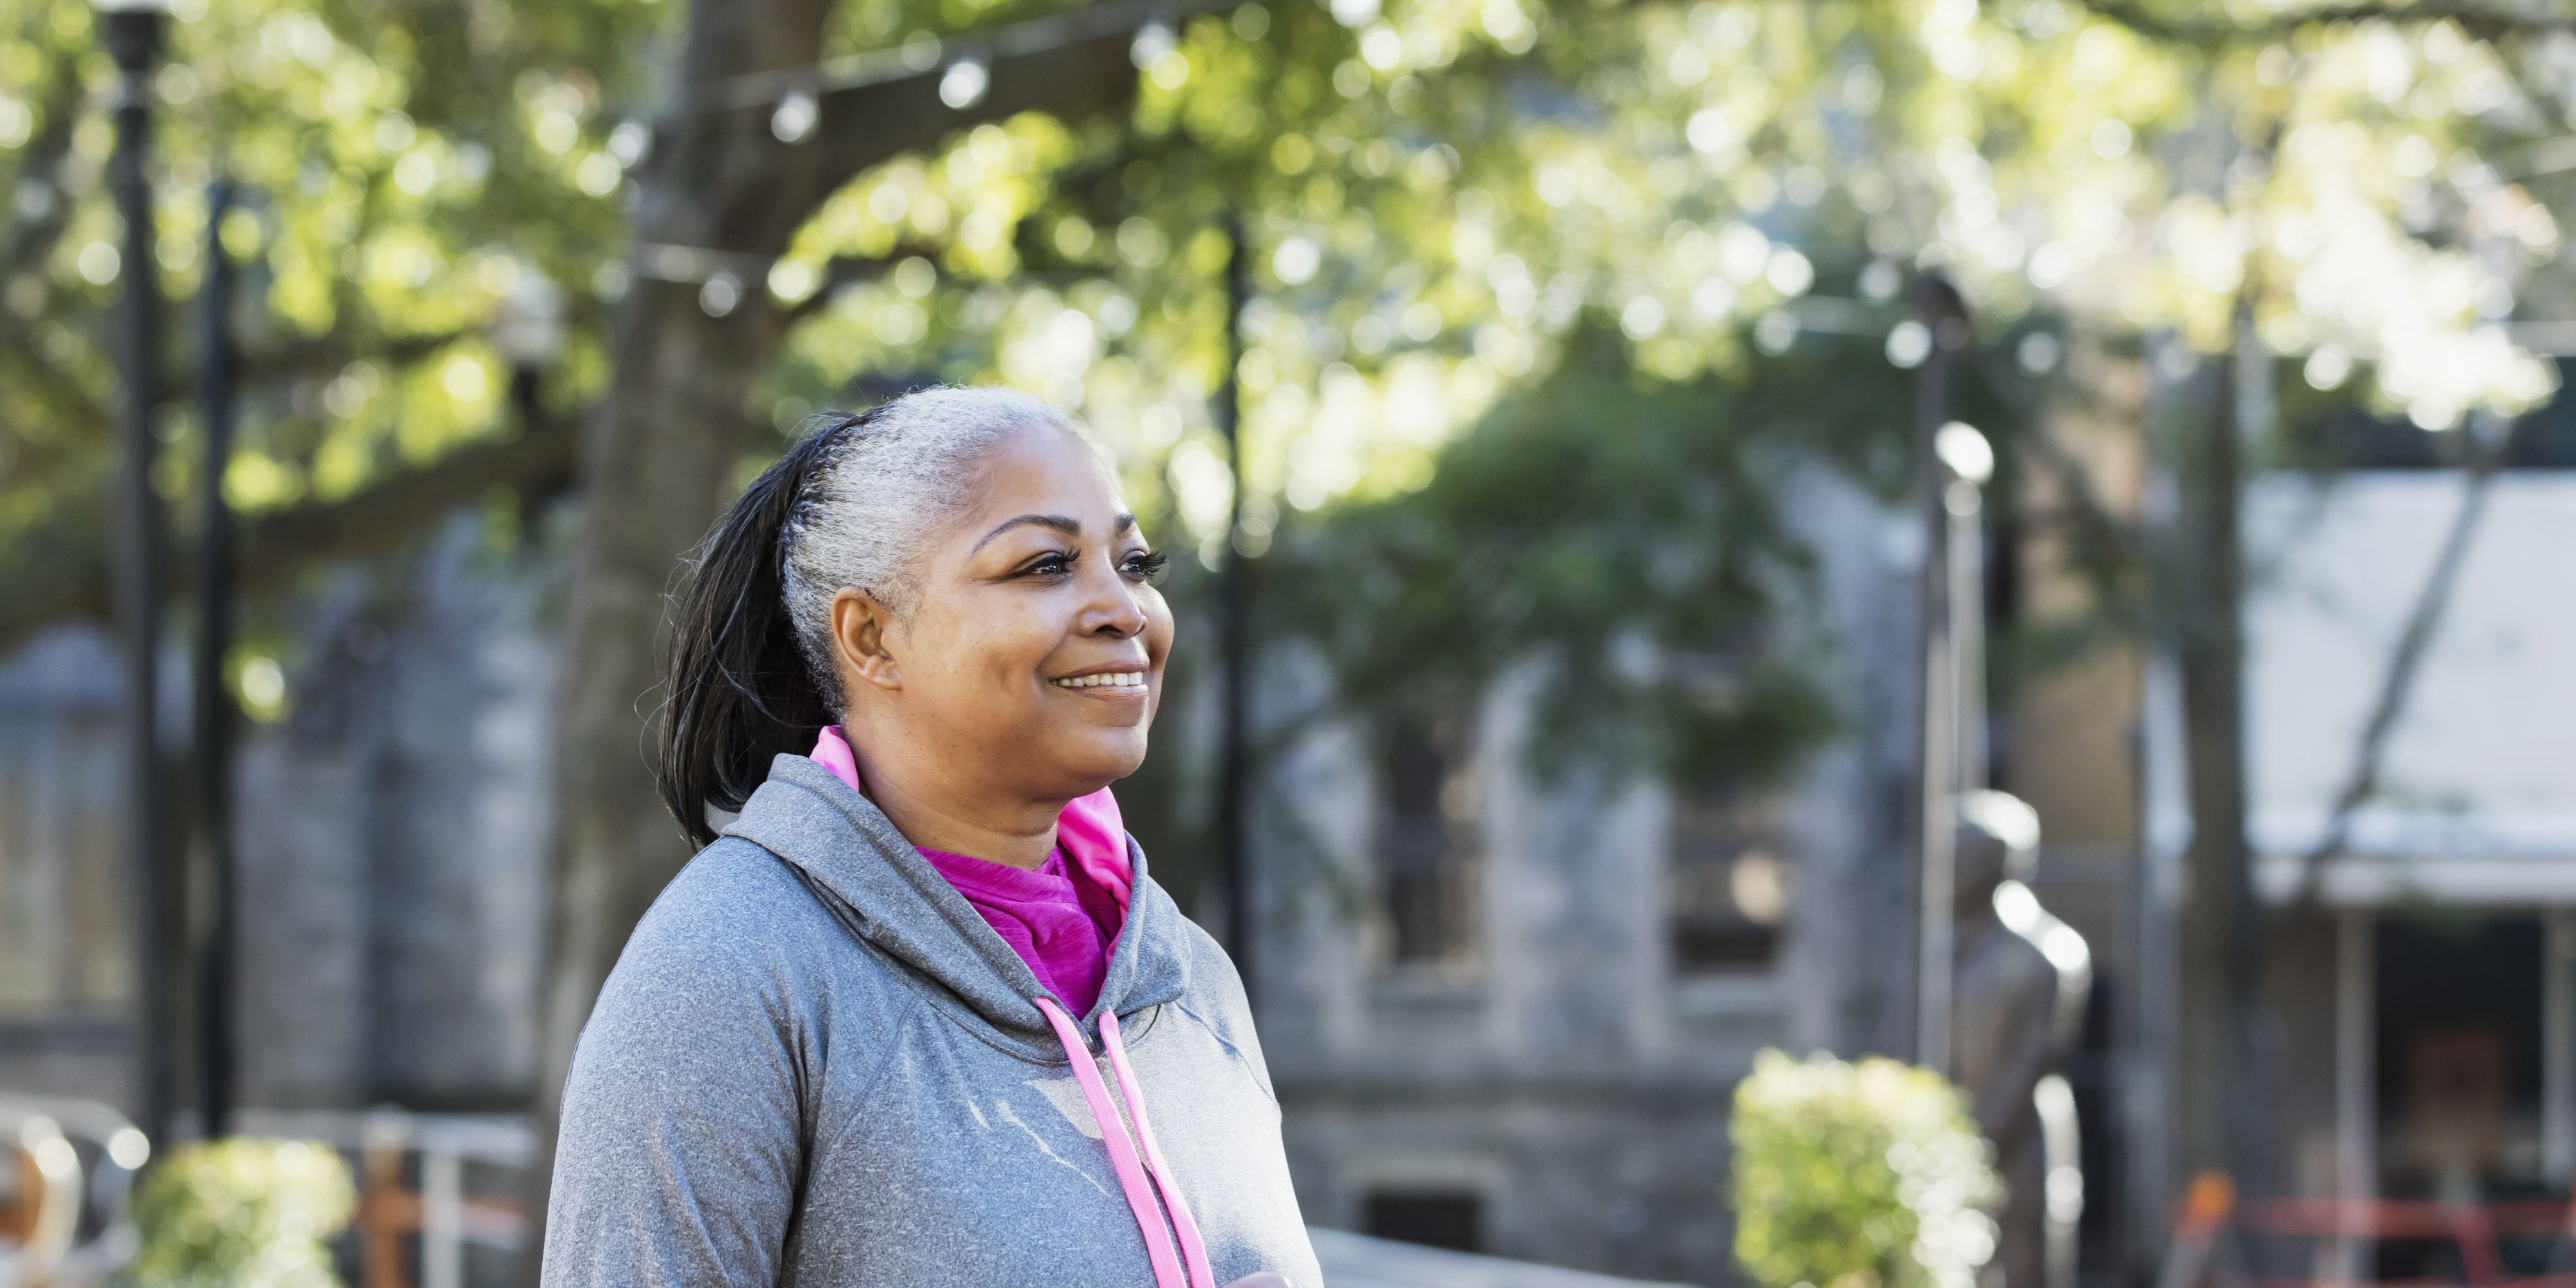 Mature African-American woman jogging in city